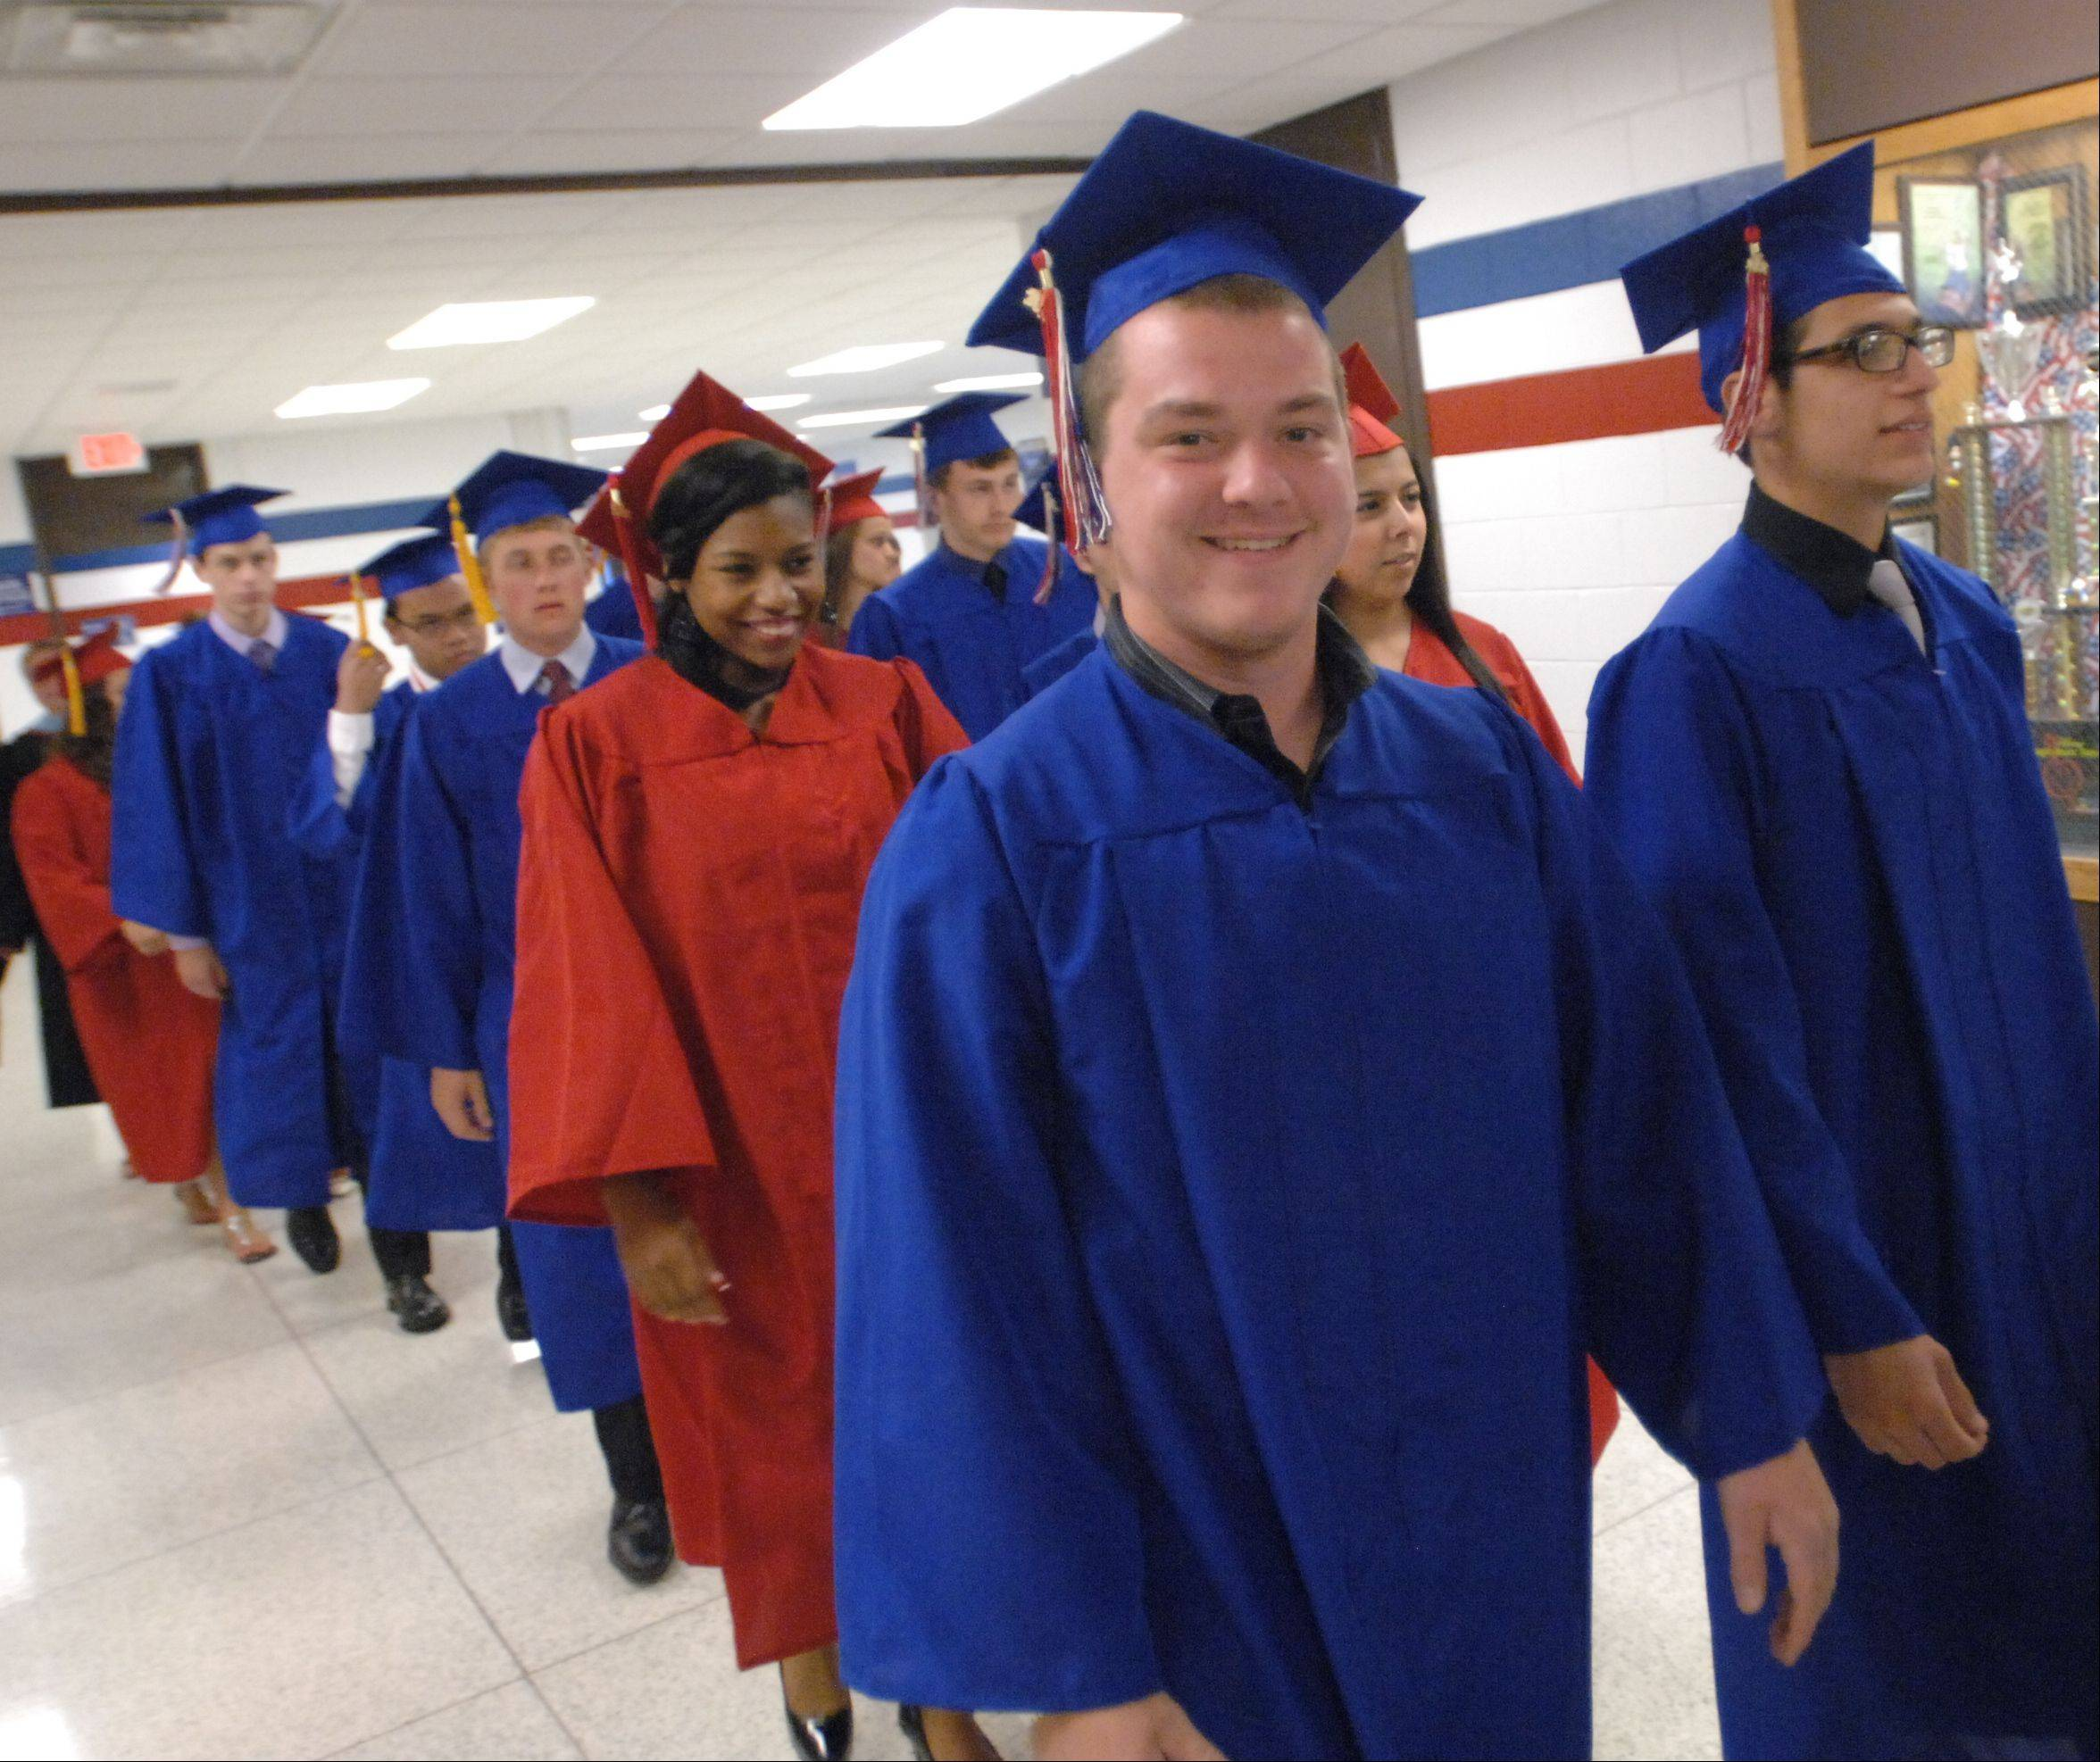 Glenbard South High School held its graduation ceremony Friday at Glenbard South in Glen Ellyn.